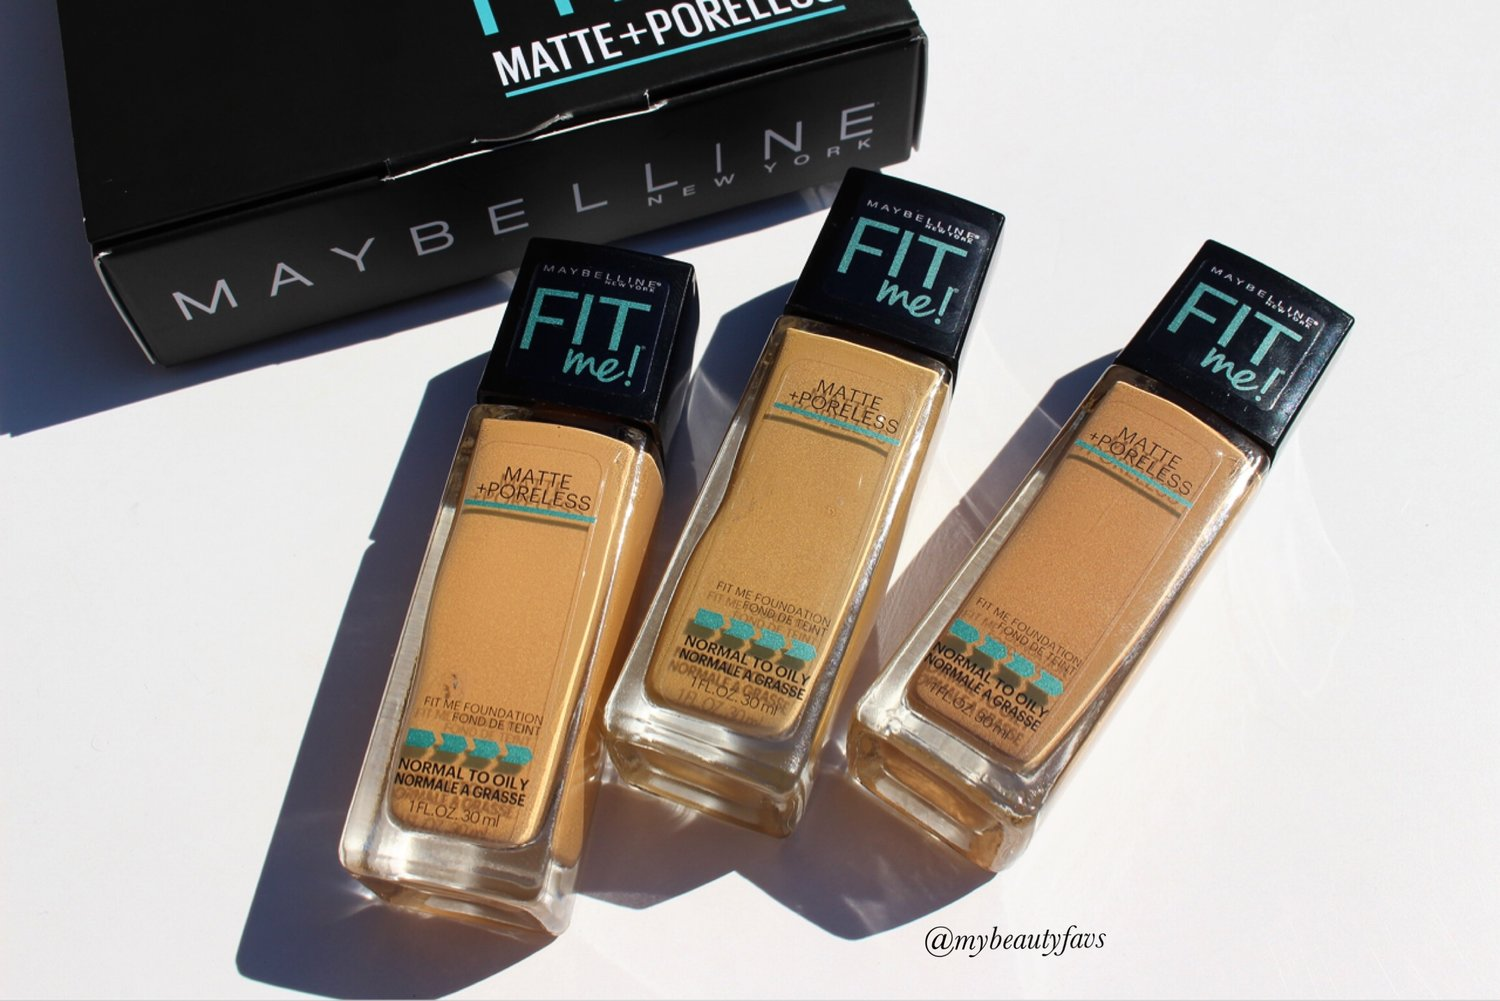 Maybelline Fit Me! Matte + Poreless Foundation - #312, 322 & 332